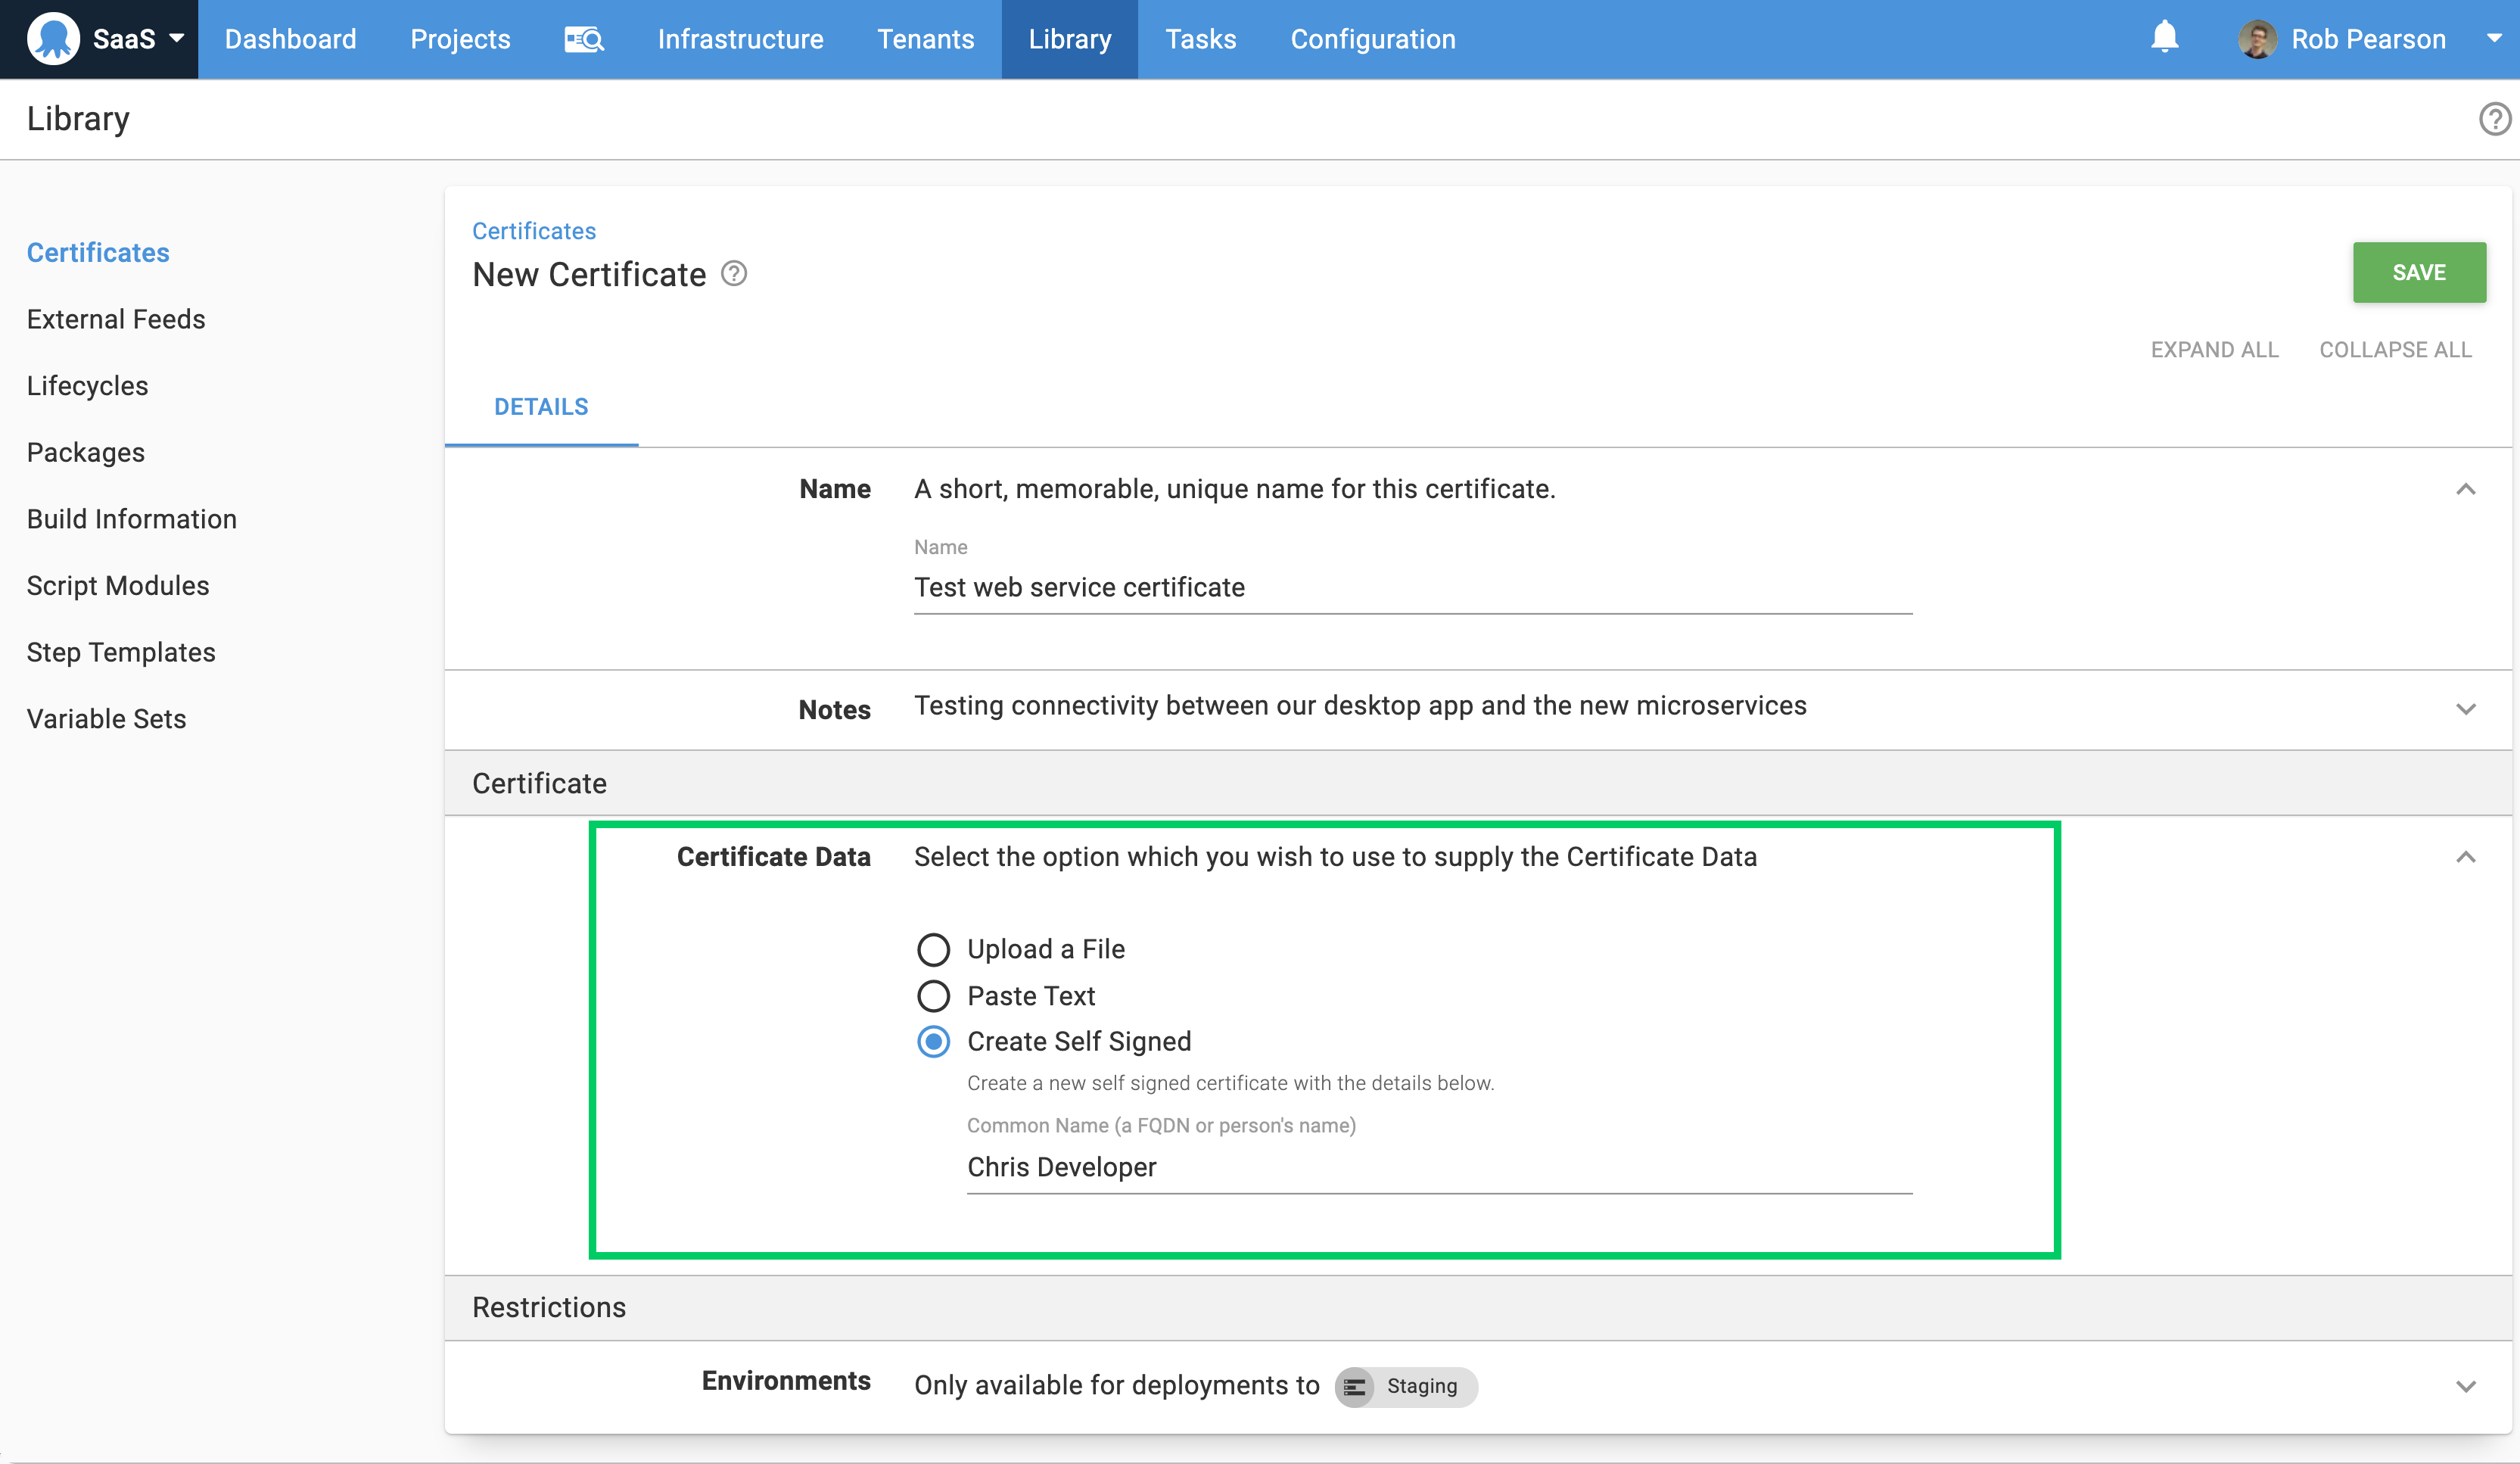 Create self-signed certificates in the certificate library